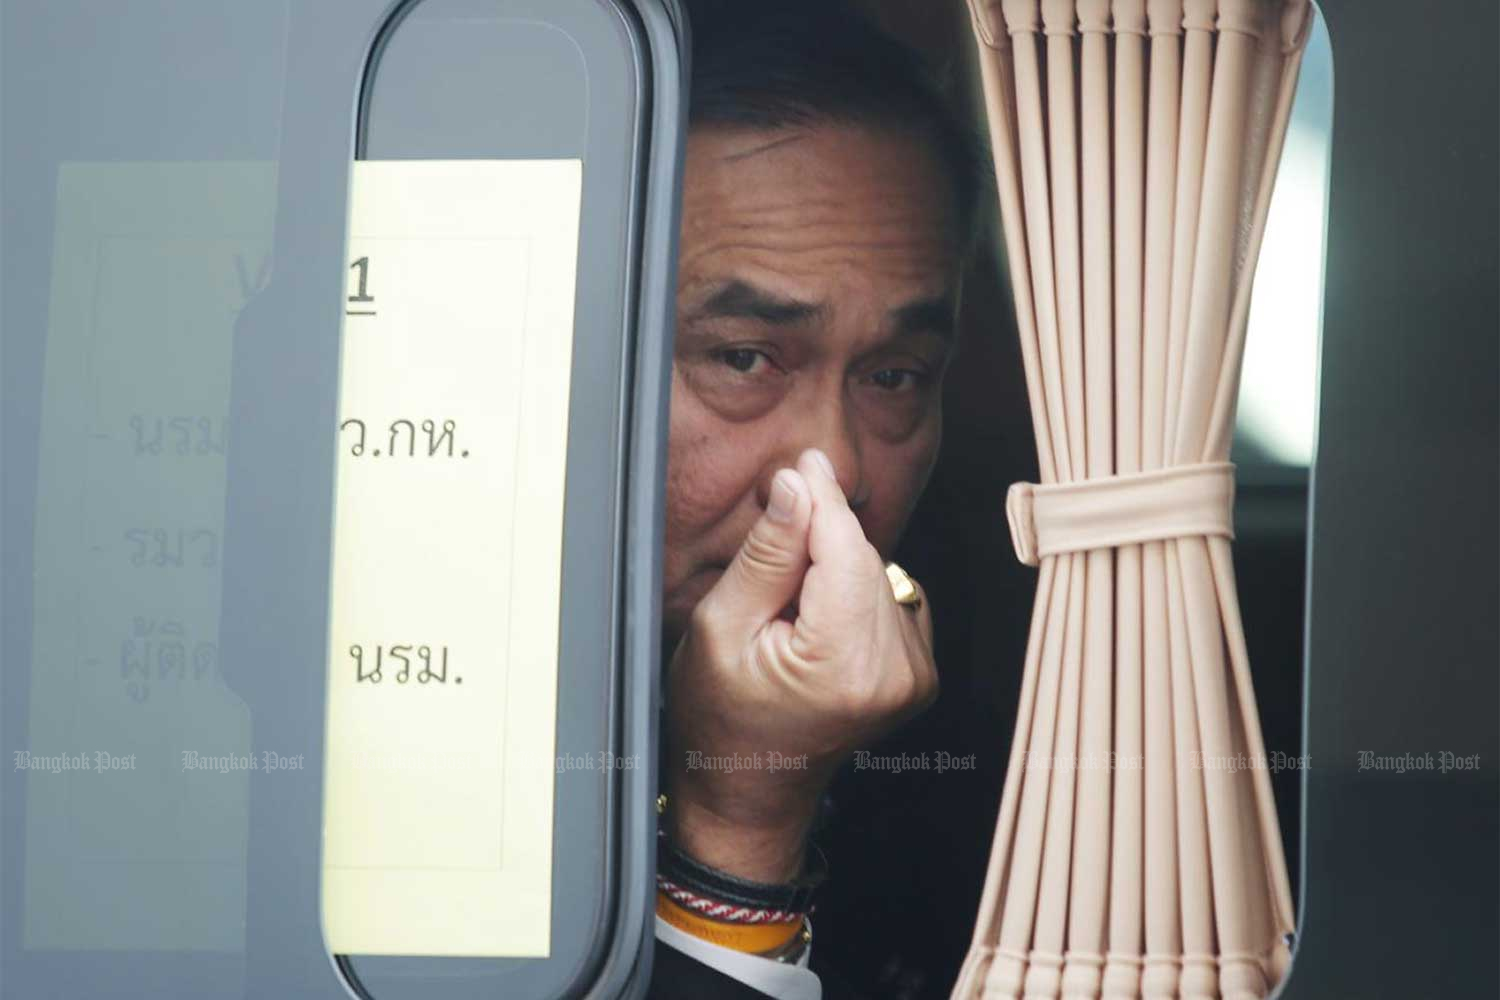 Prime Minister Prayut Chan-o-cha gives a mini heart gesture as he leaves the Armed Forces Academies Preparatory School in Nakhon Nayok in January last year. Political observers say the Prayut administration will face a tough year this year as it has to face the impact of the Covid-19 and charter amendments. (Photo by Apichit Jinakul)